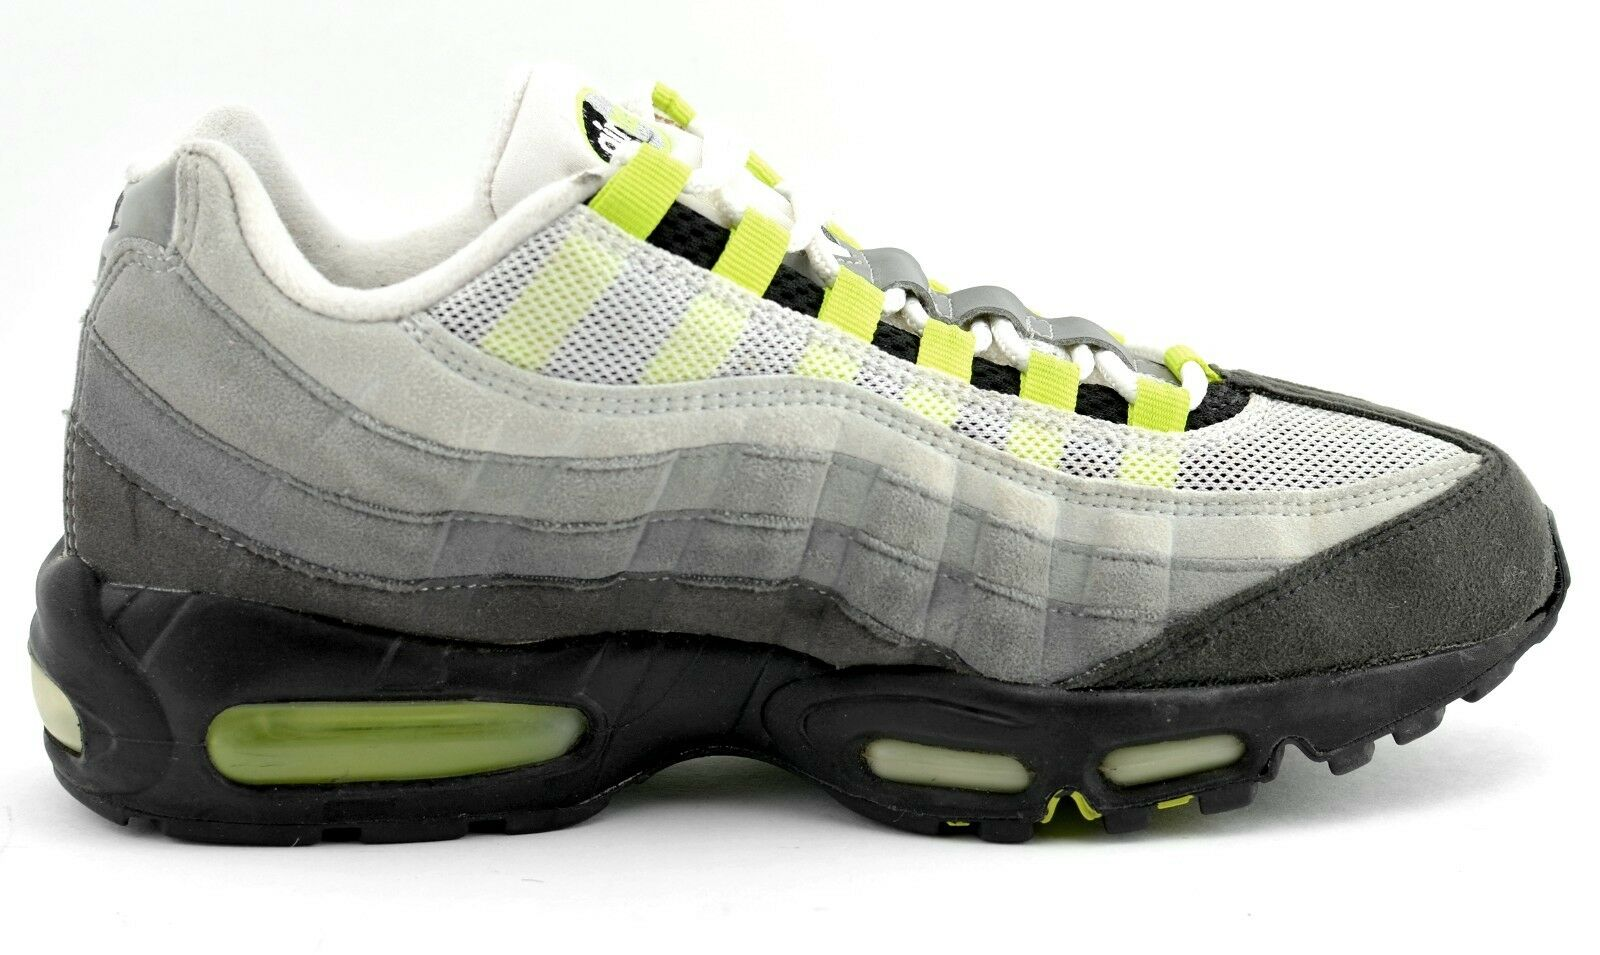 MENS NIKE AIR MAX 95 CLASSIC RUNNING SHOES SIZE 9 GRAY 313111-071 2005